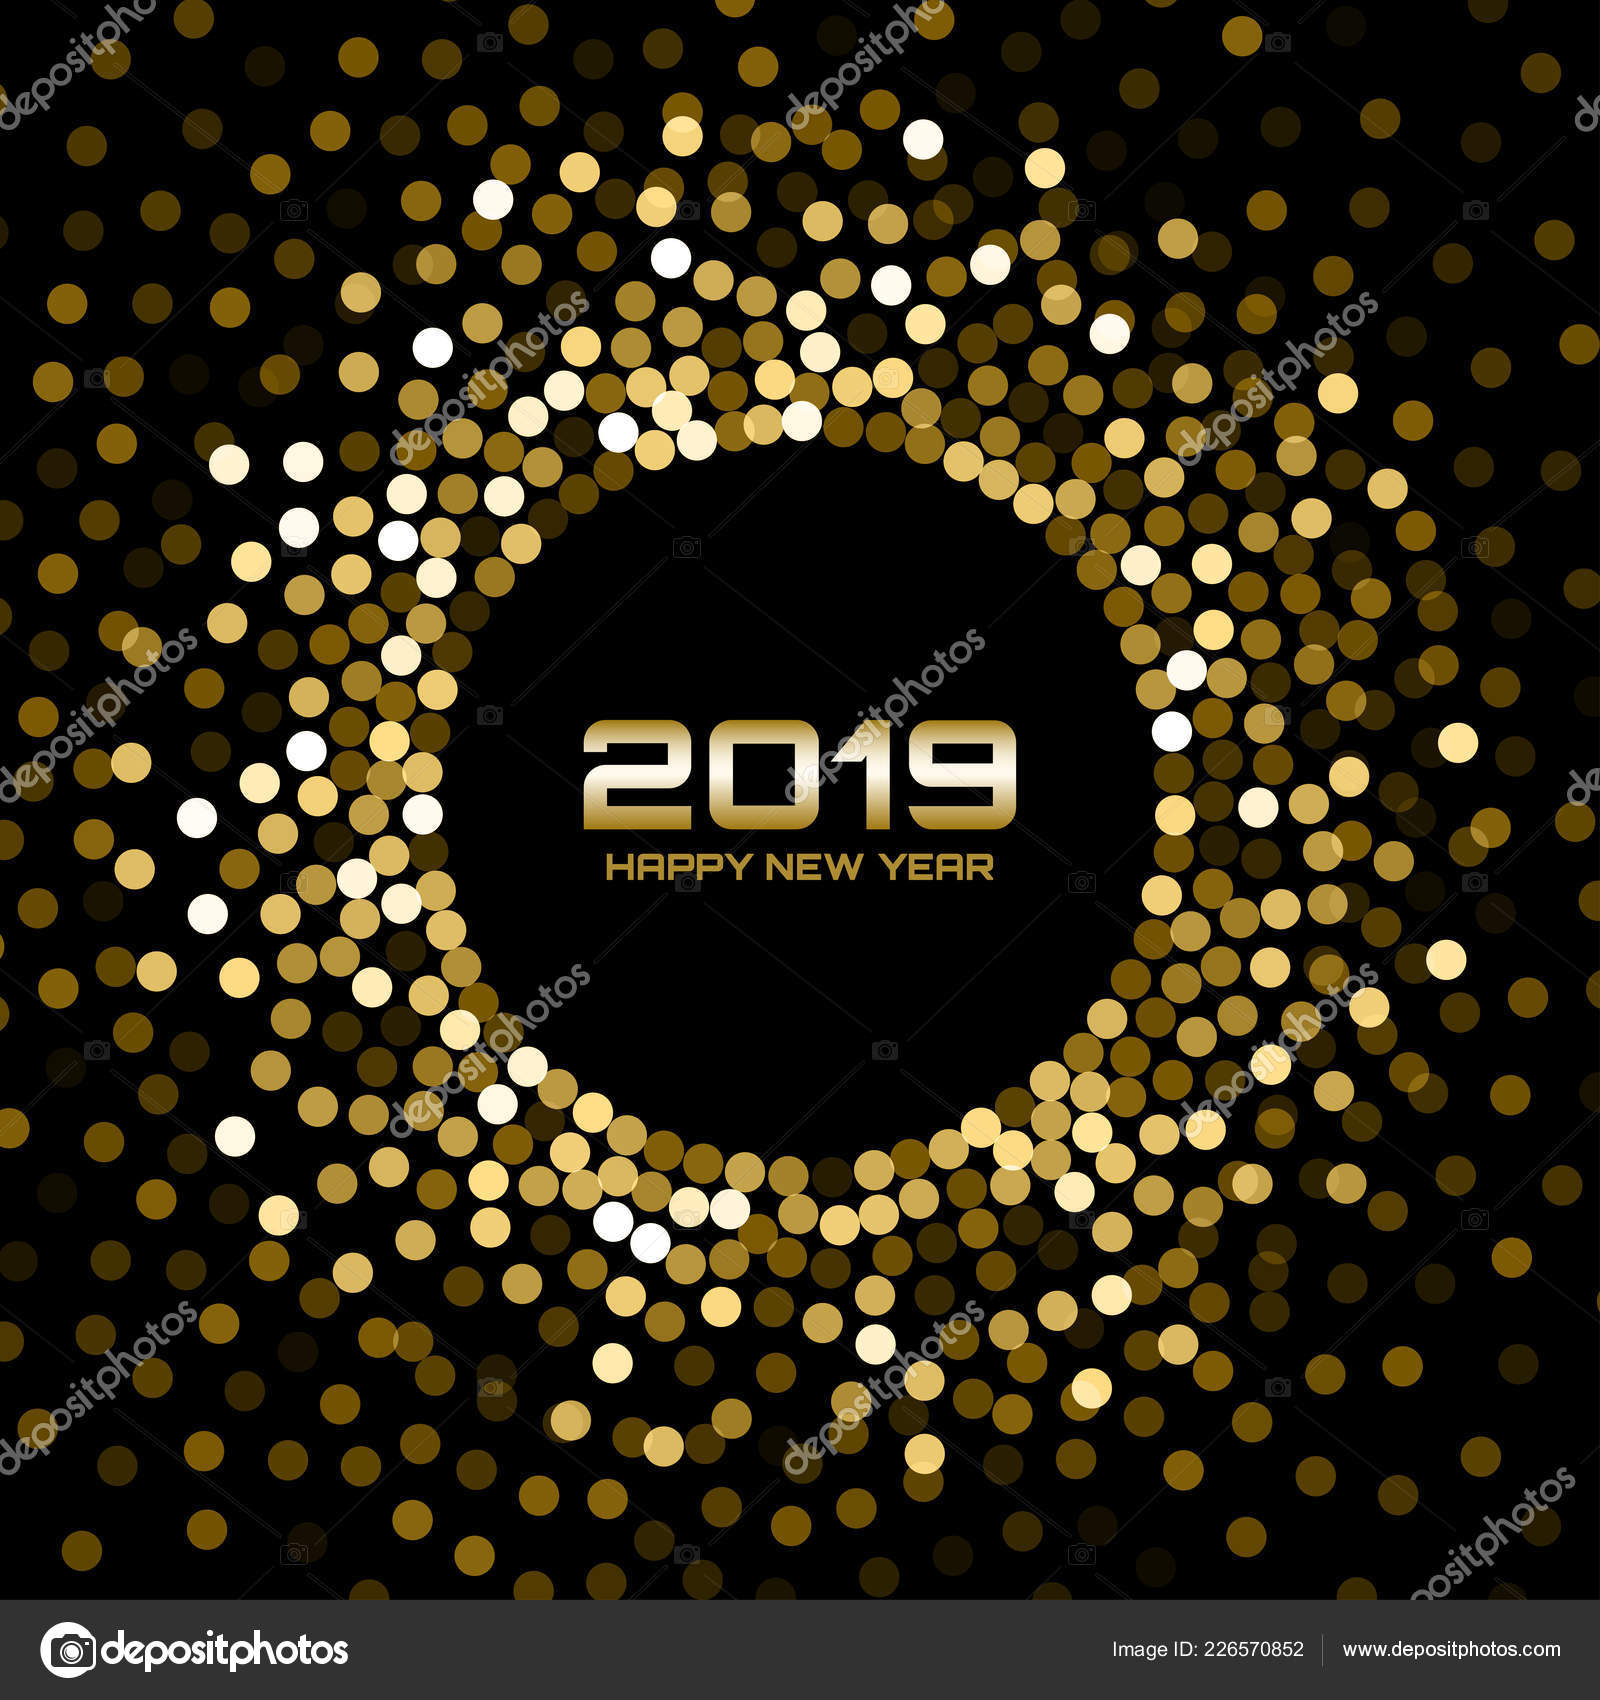 new year 2019 card background gold glitter paper confetti